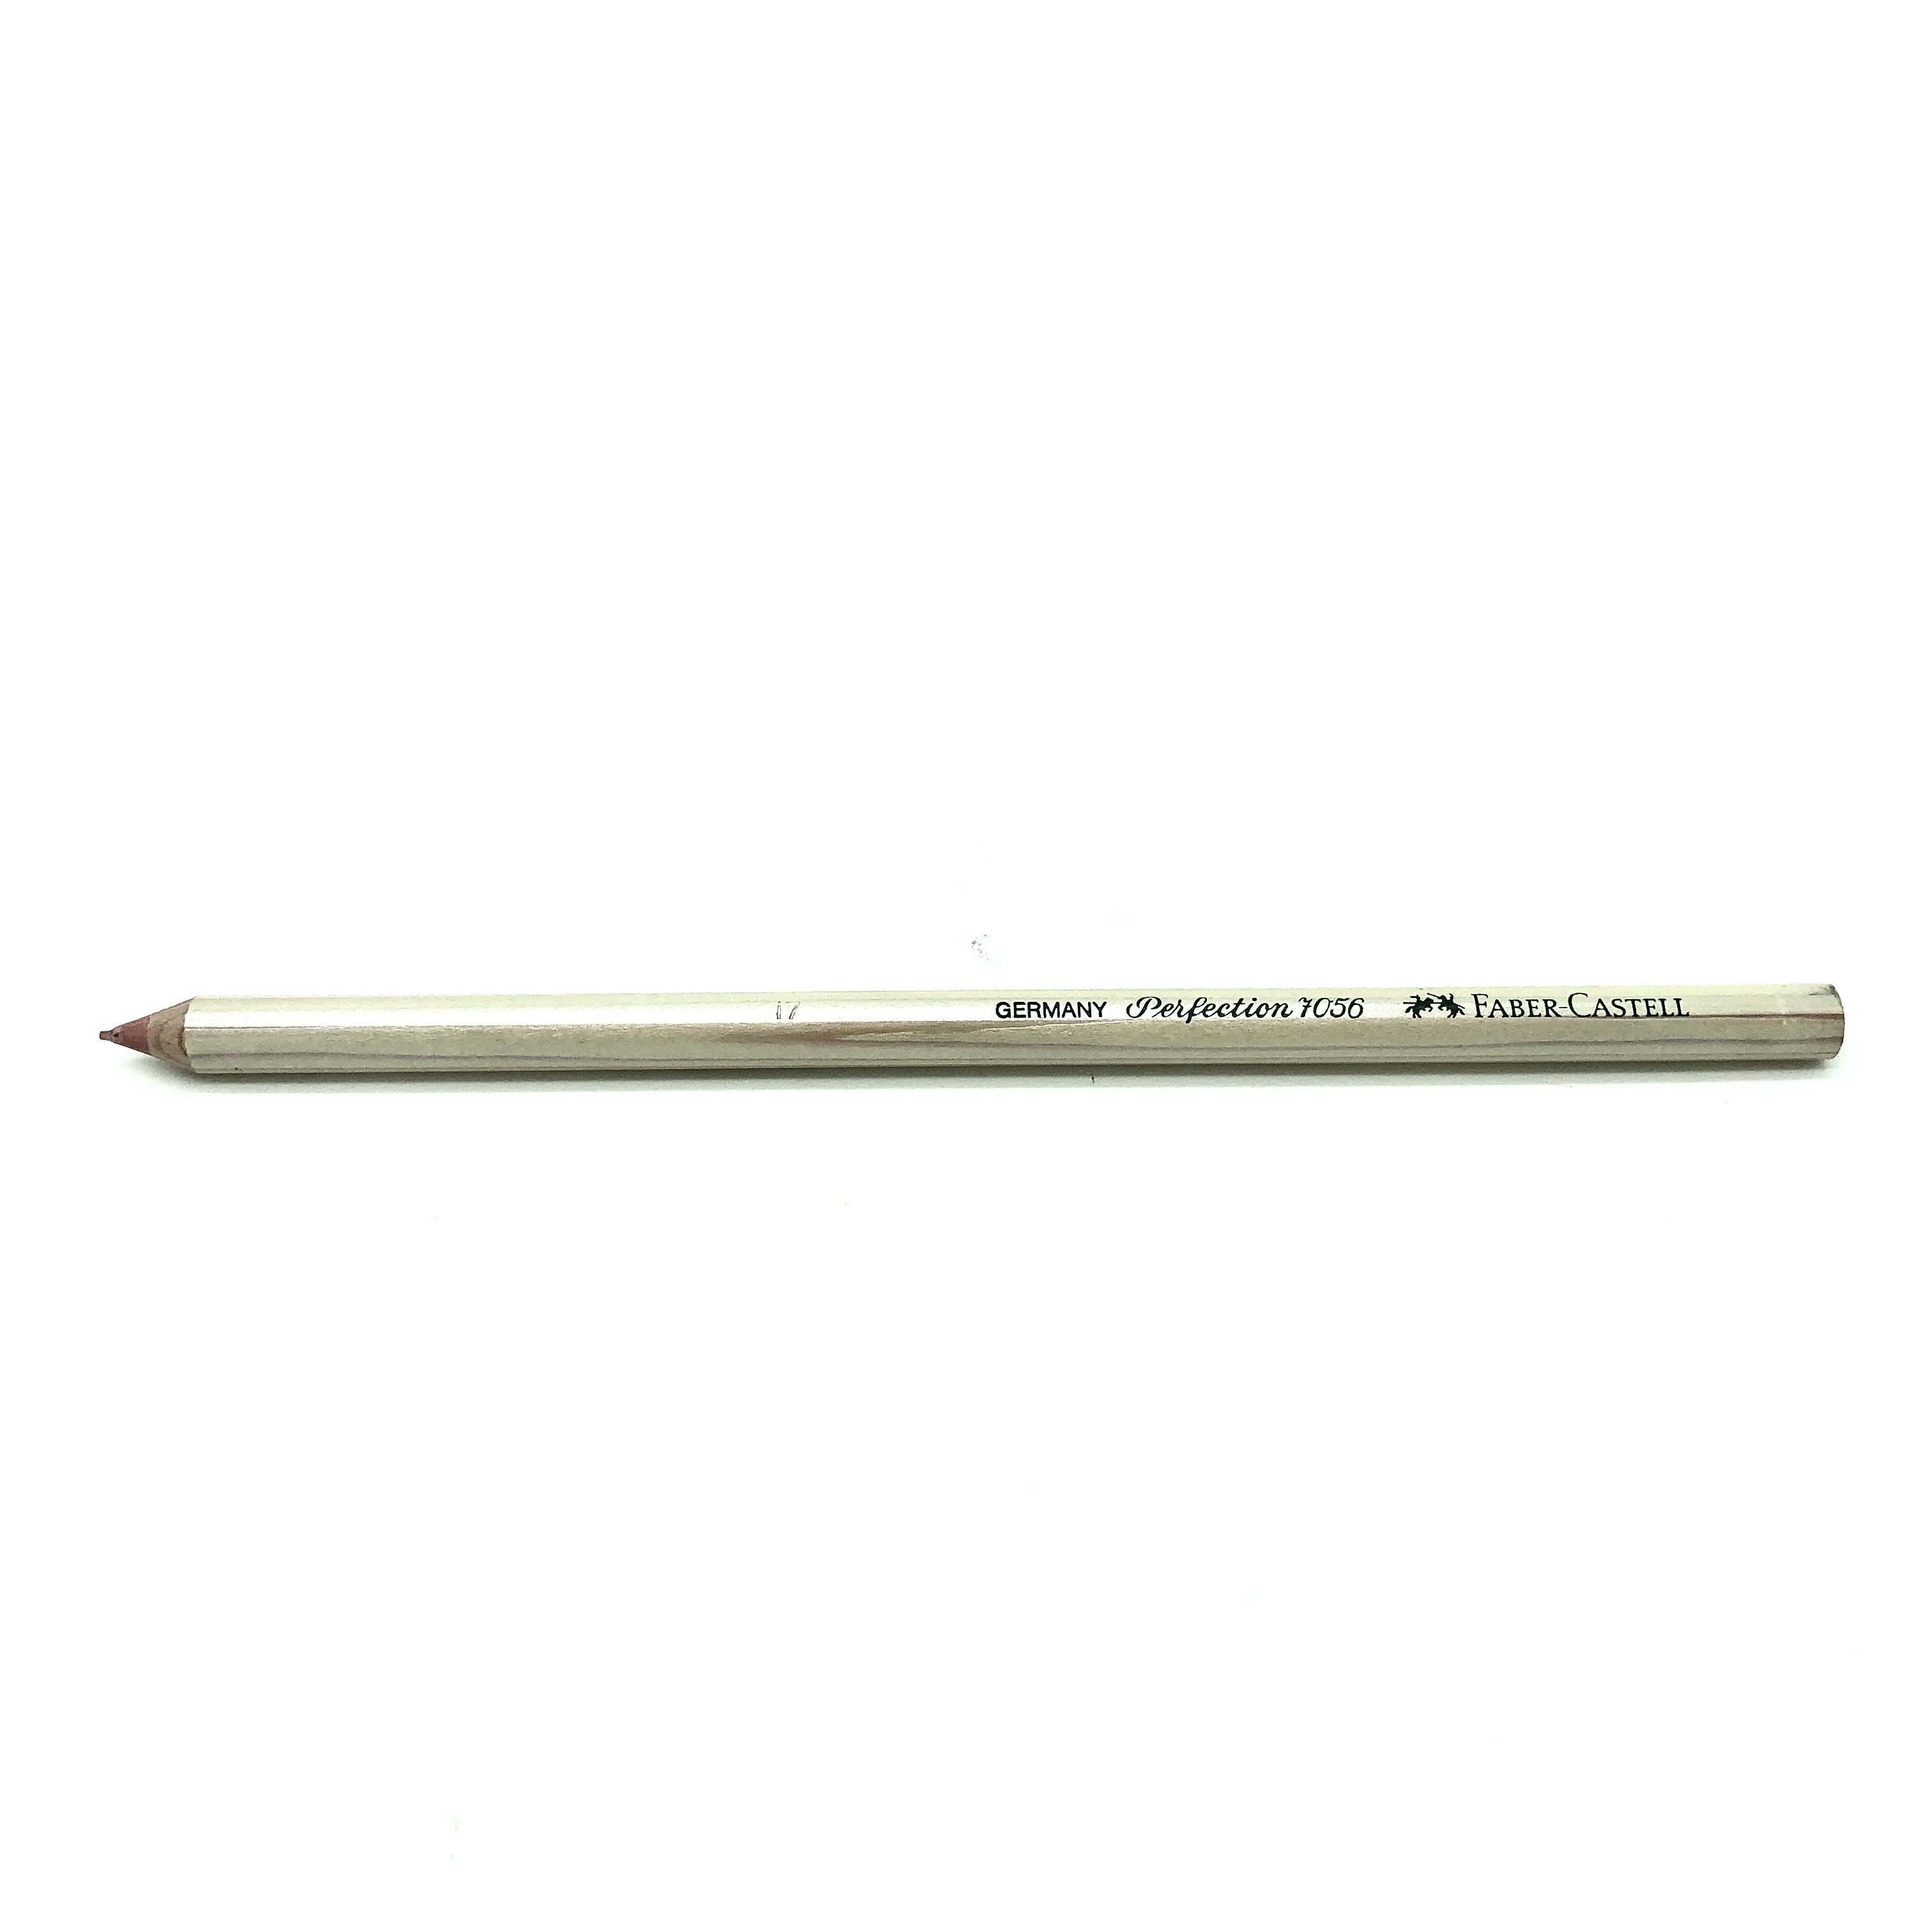 Faber-Castell Perfection Pencil Eraser Single Ended